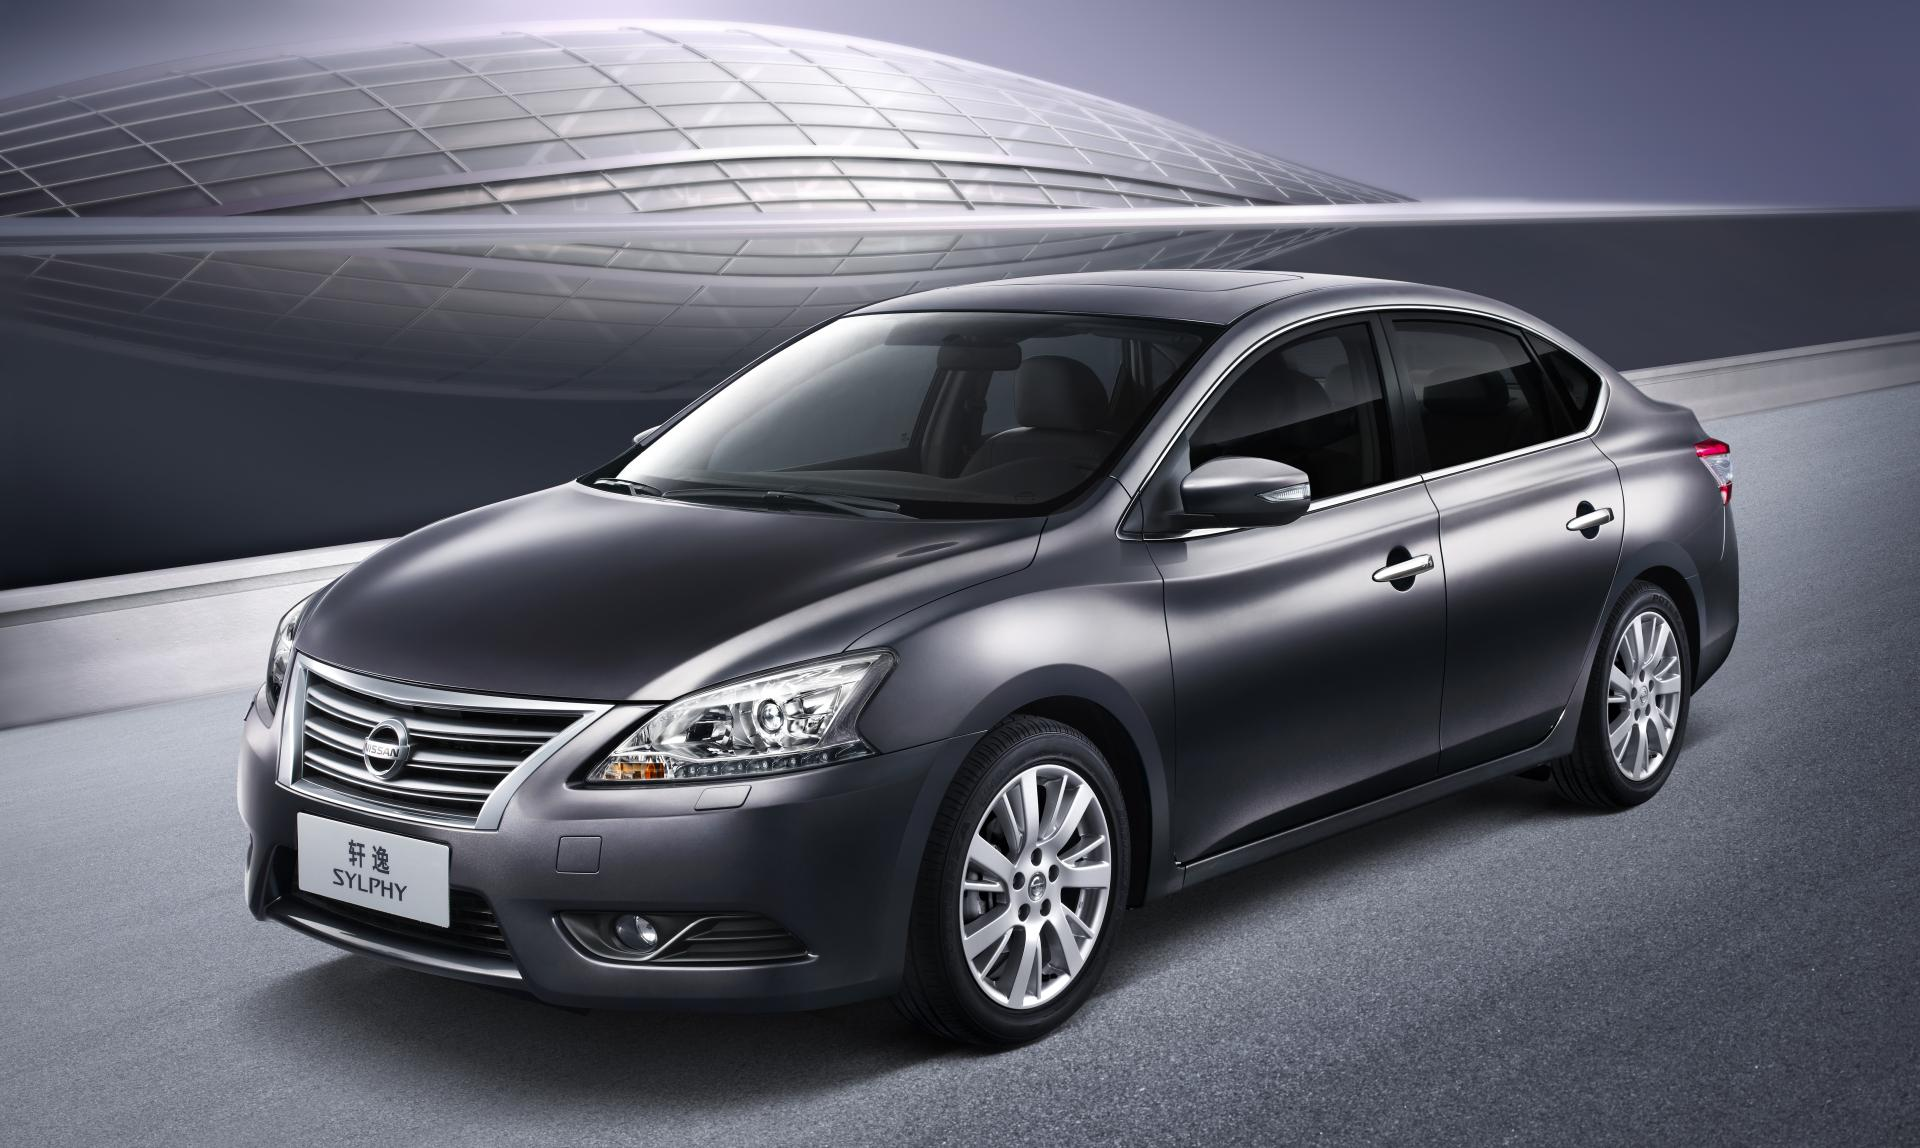 Nissan models images wallpaper pricing and information nissan sylphy concept vanachro Images